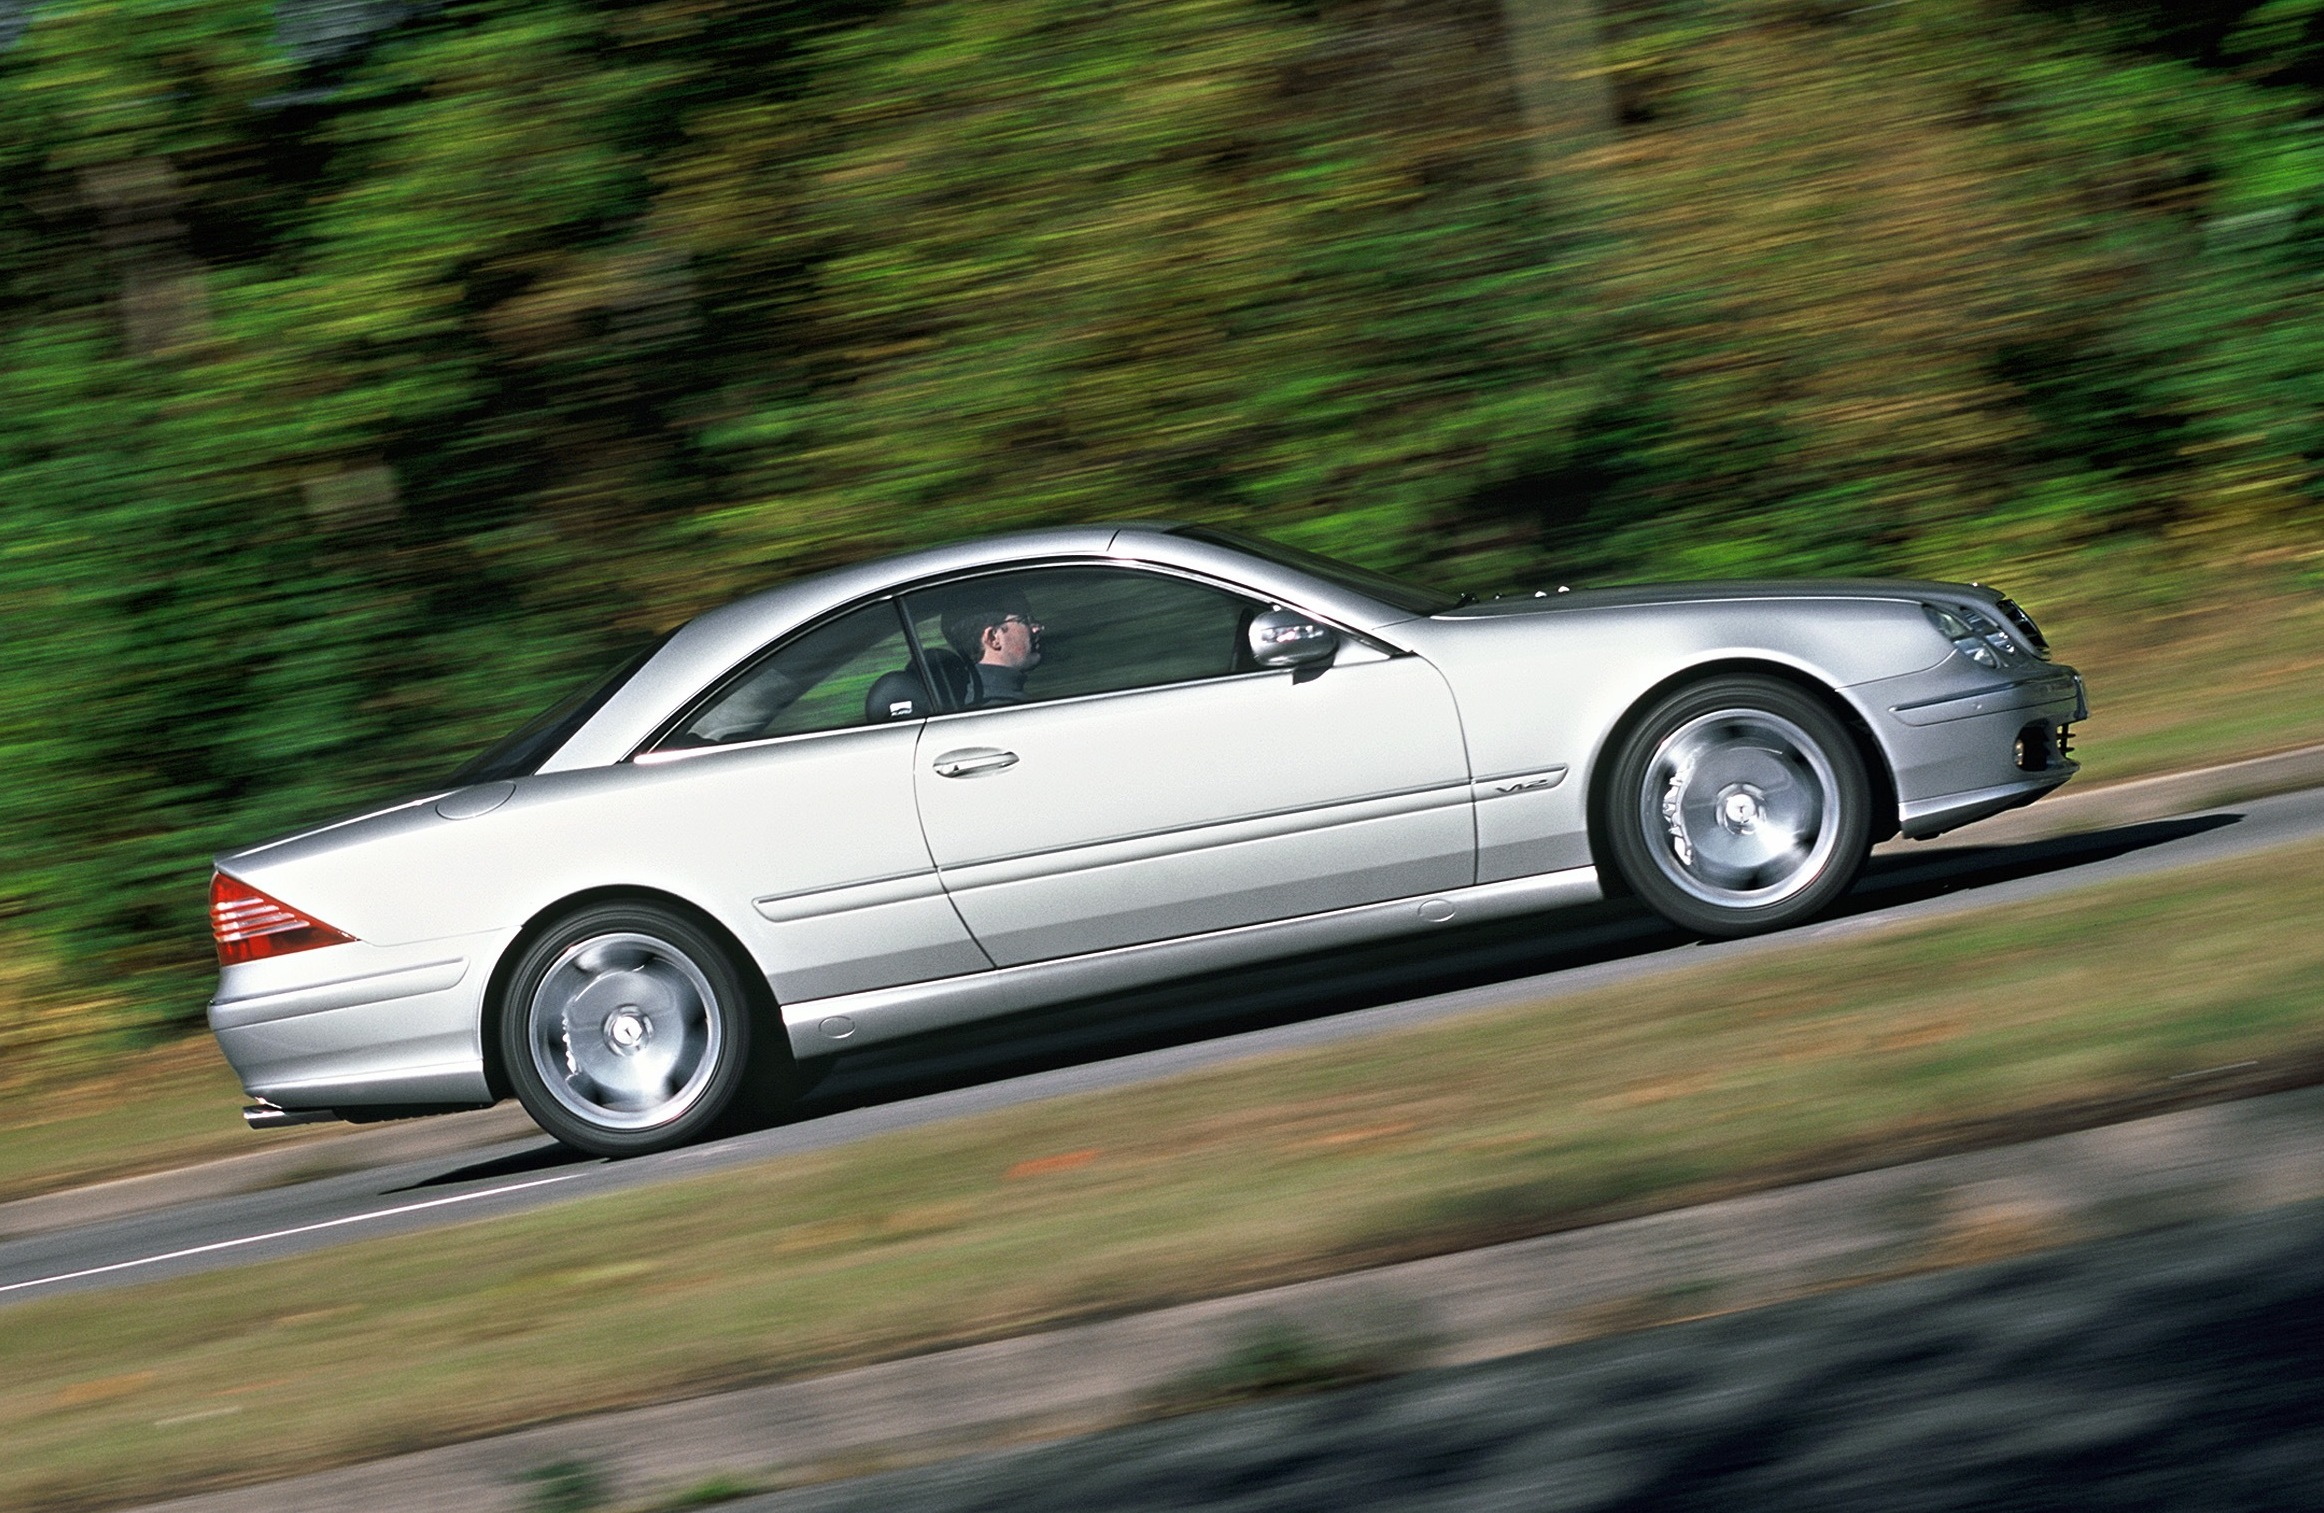 Mercedes-Benz CL55 AMG driving